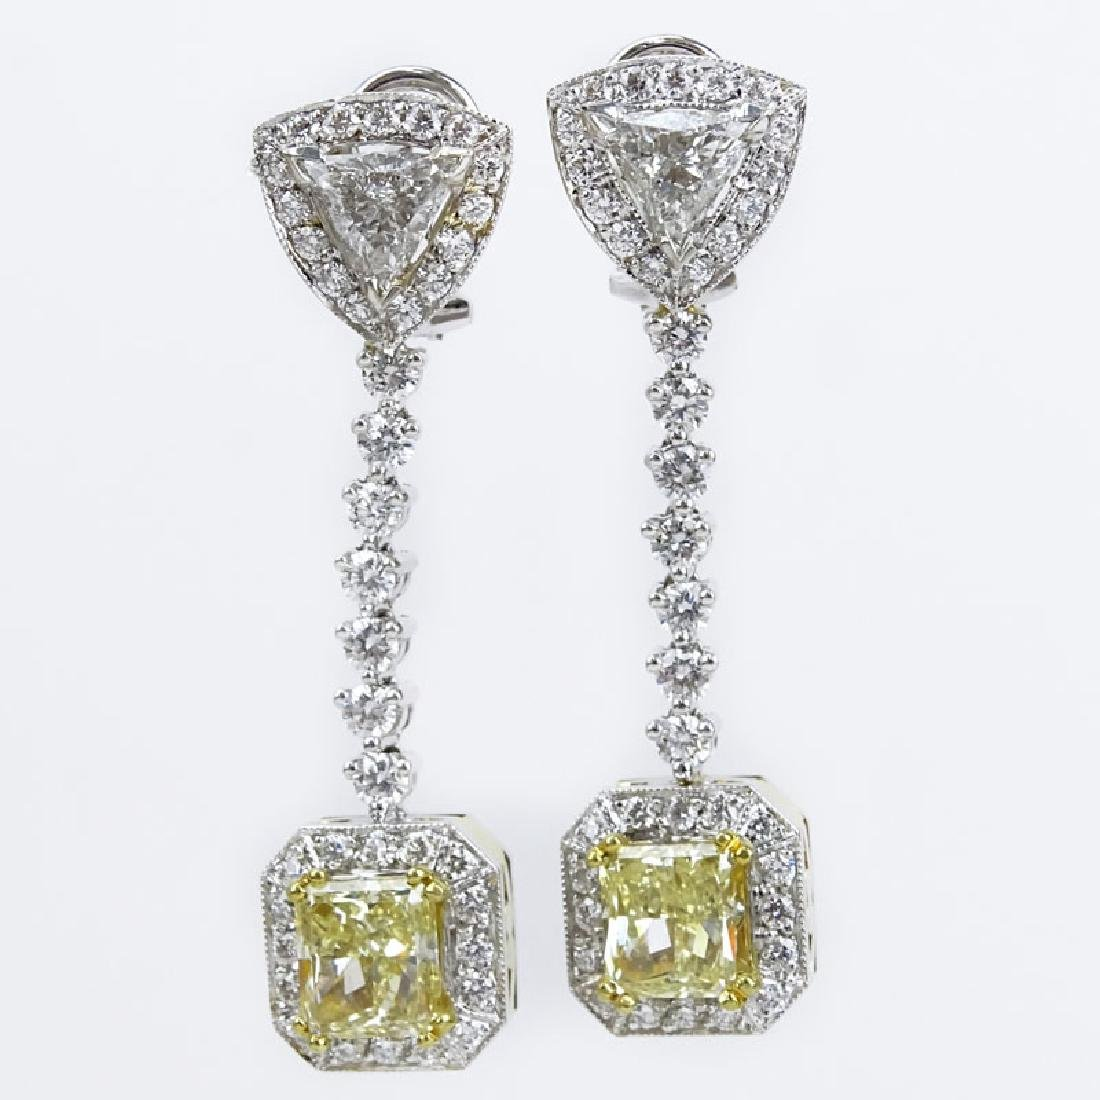 Very Fine Quality Approx. 3.70 Carat Radiant Cut Fancy